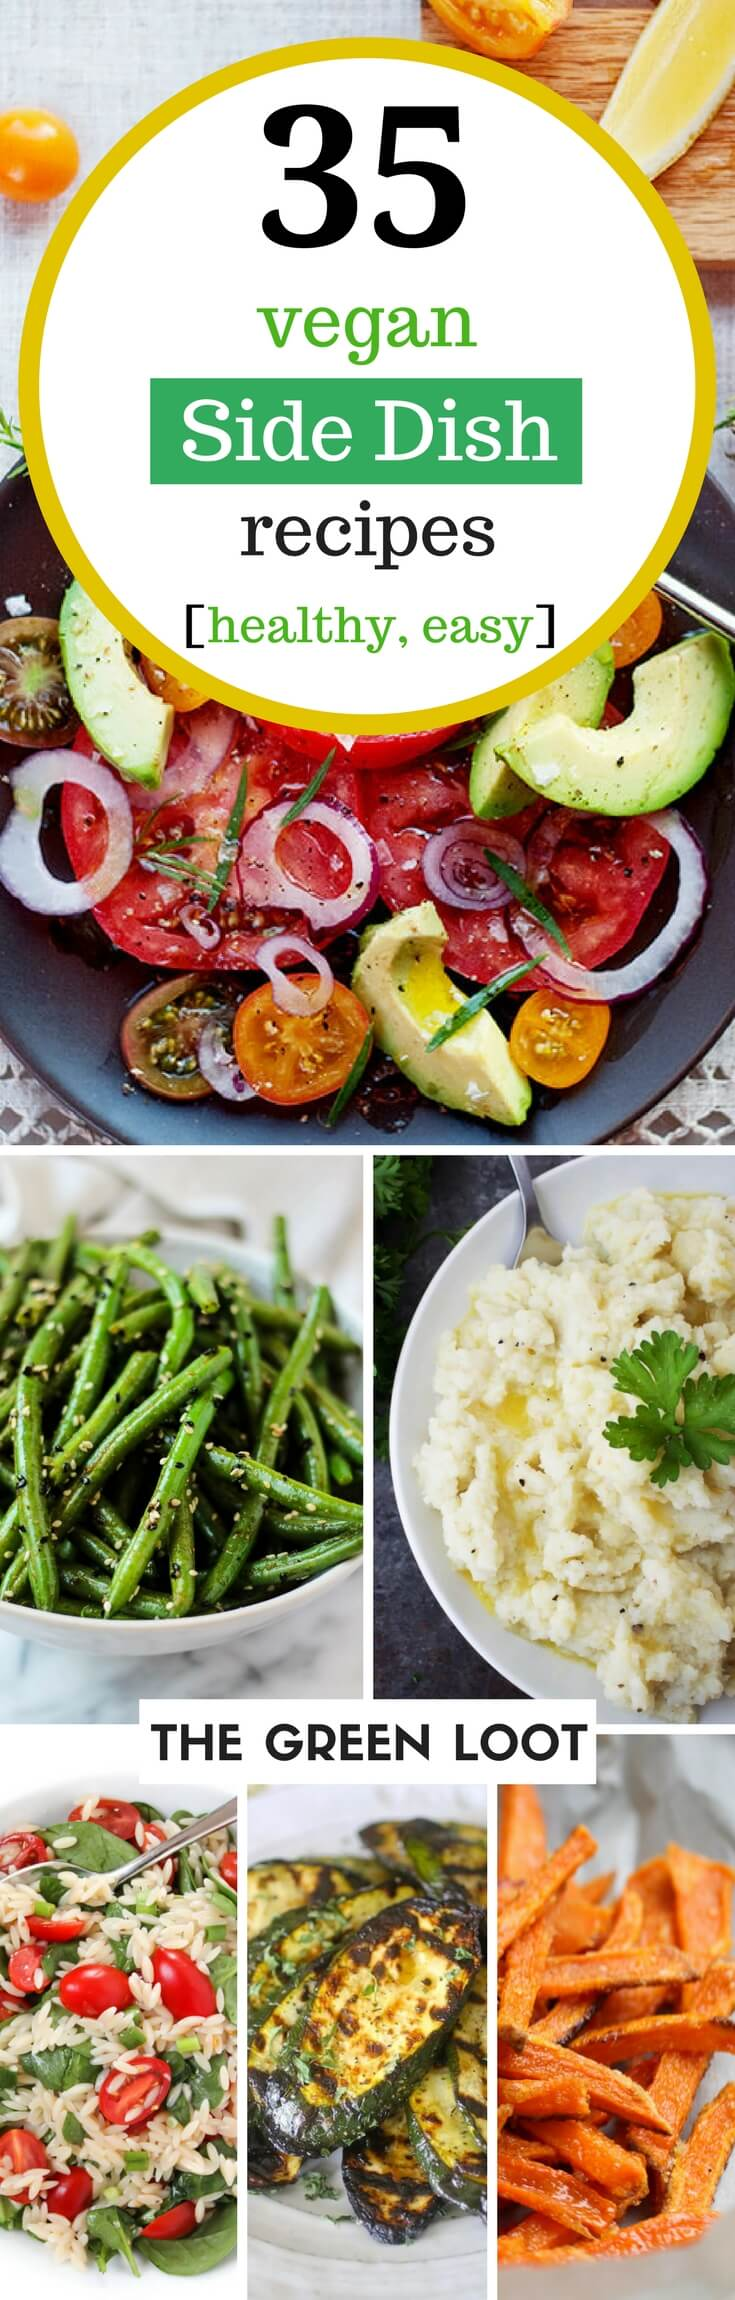 Vegan Side Dish Recipes | The Green Loot #vegan #sidedish